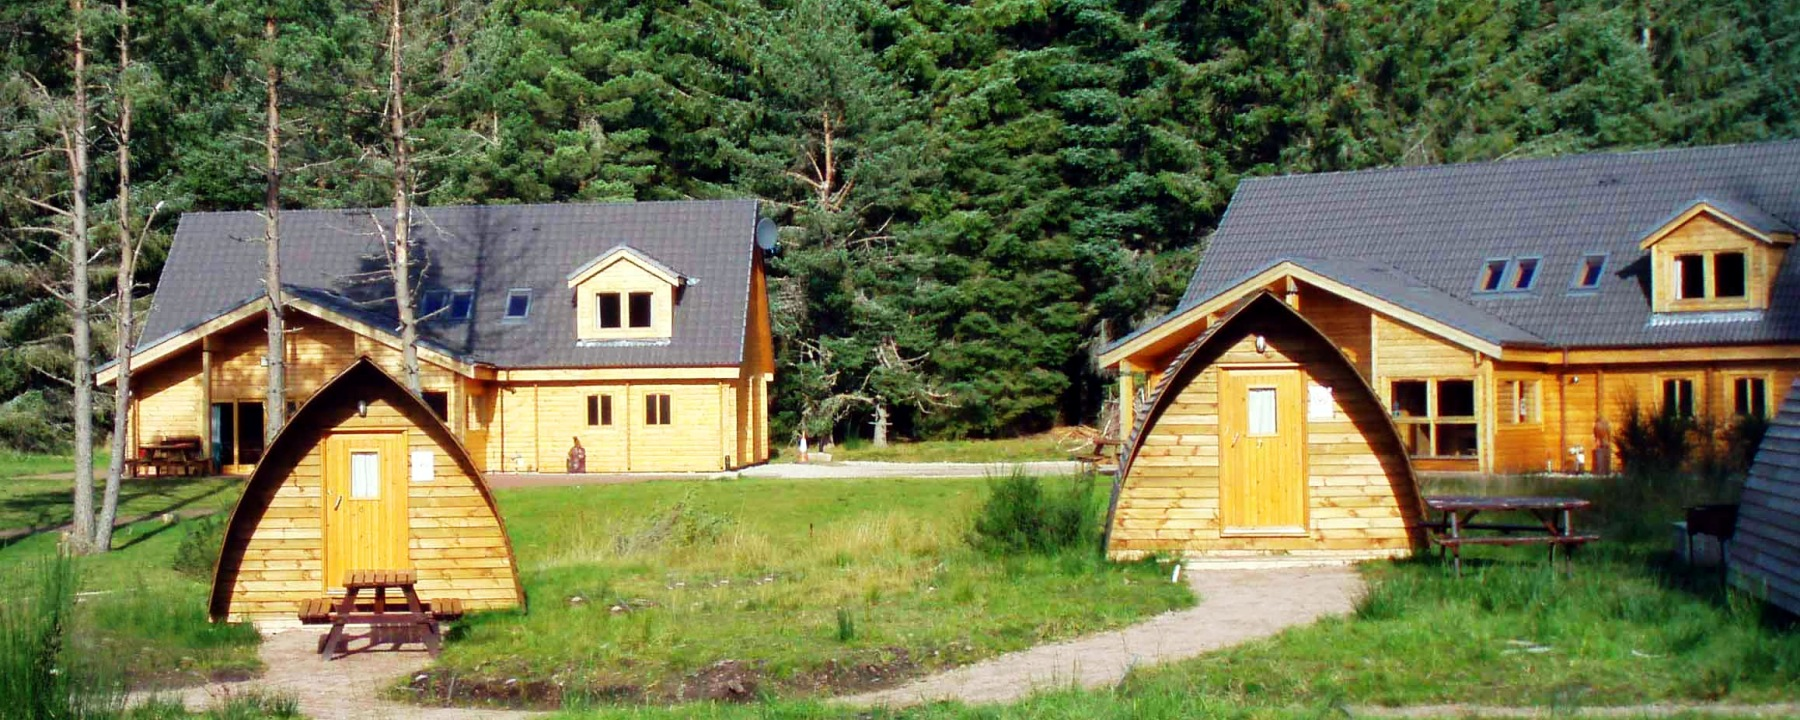 Image gallery lodge aviemore for Great accommodation